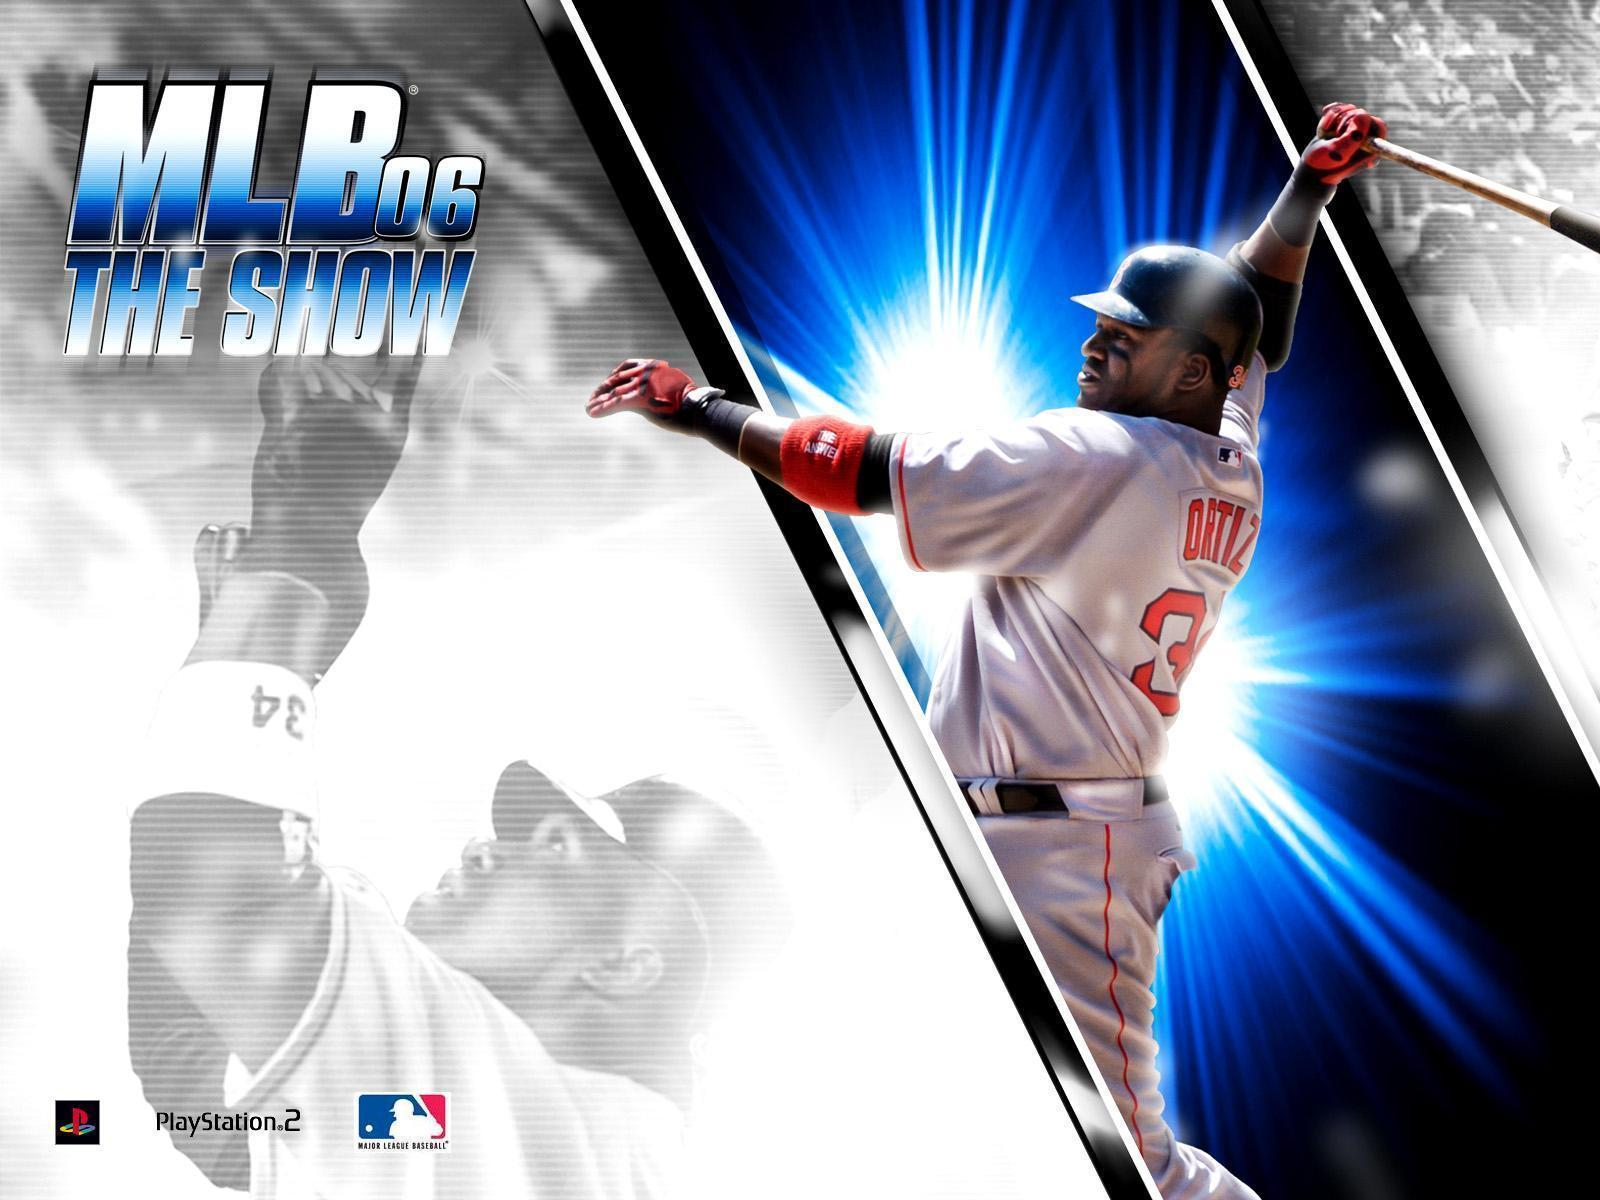 Mlb Wallpapers : Mlb Sports Hd Wallpapers Free Download Wallpapers